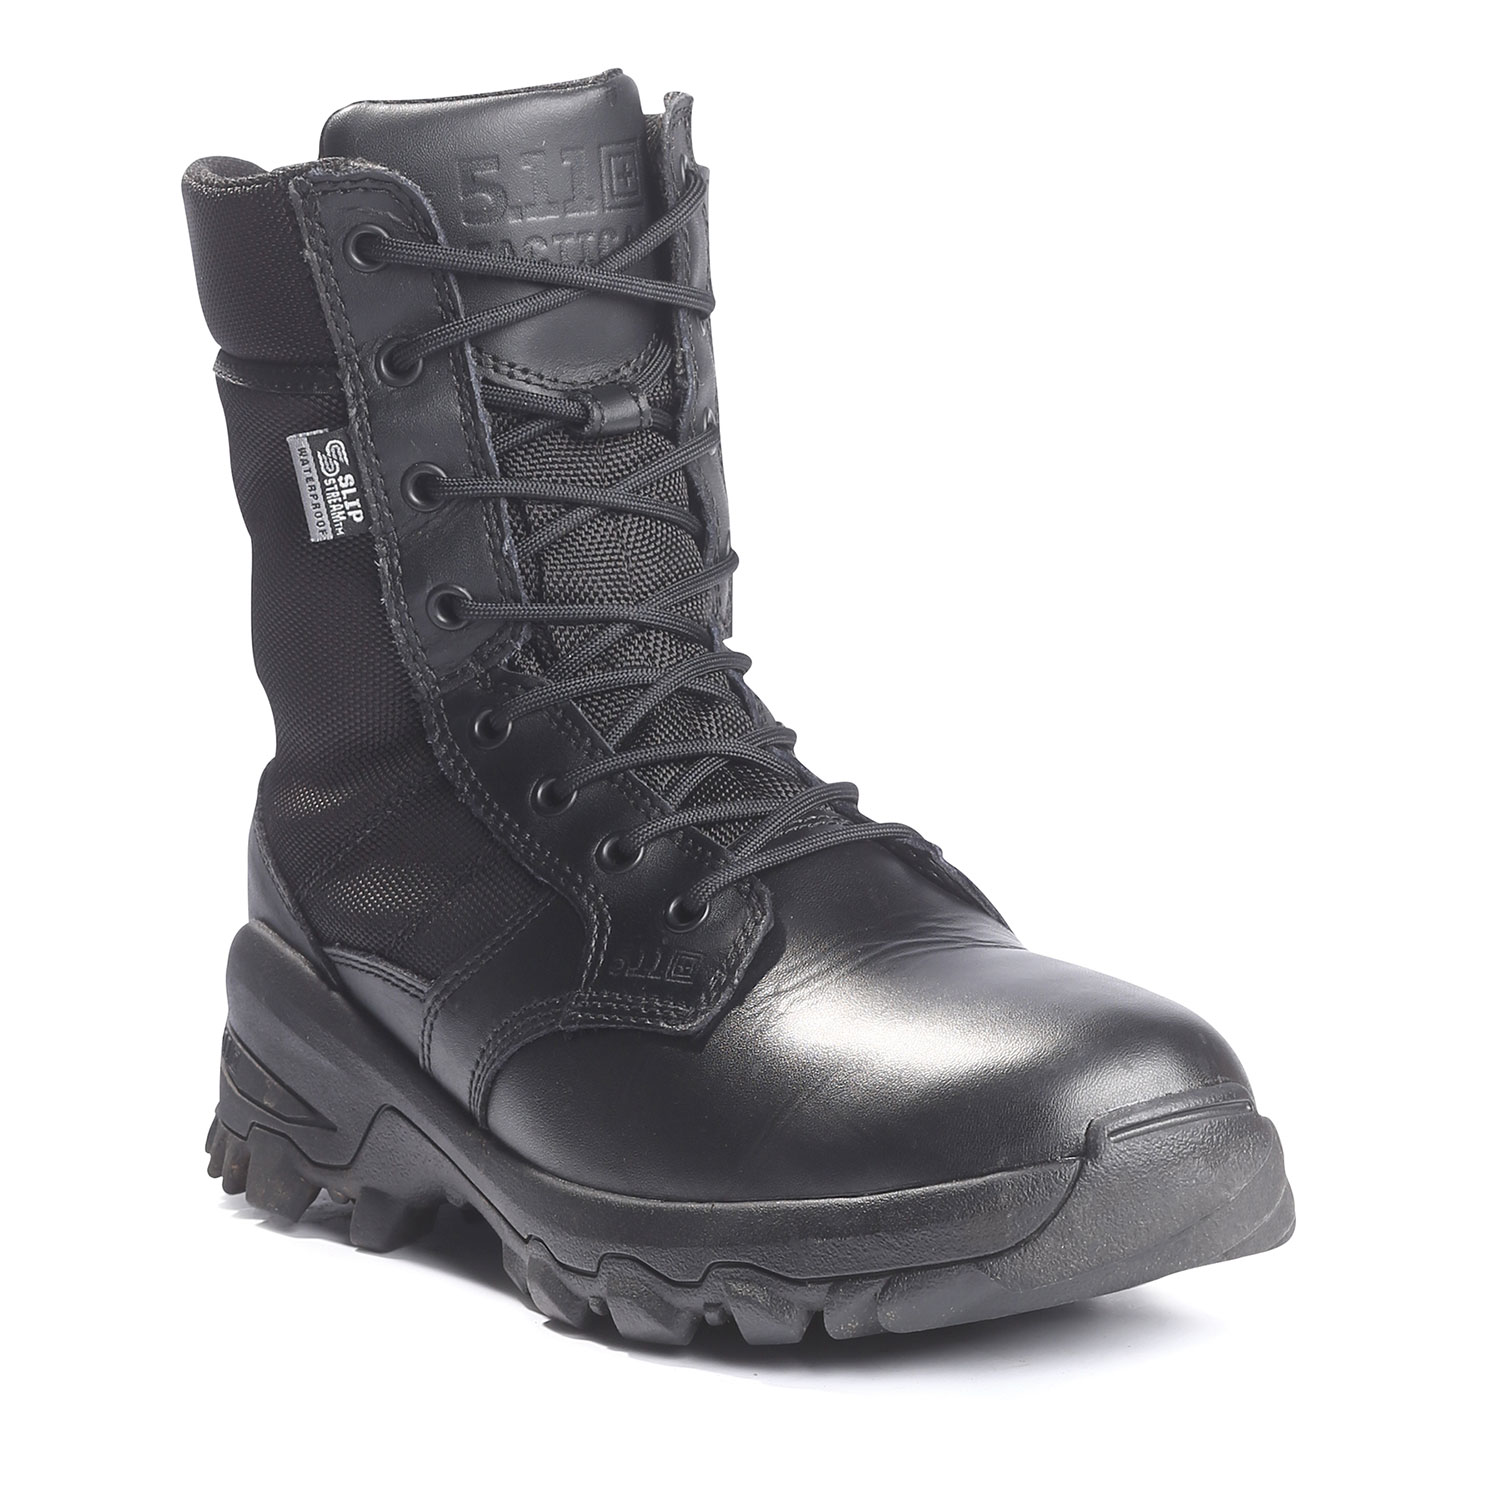 5.11 Speed 3.0 Waterproof Boots